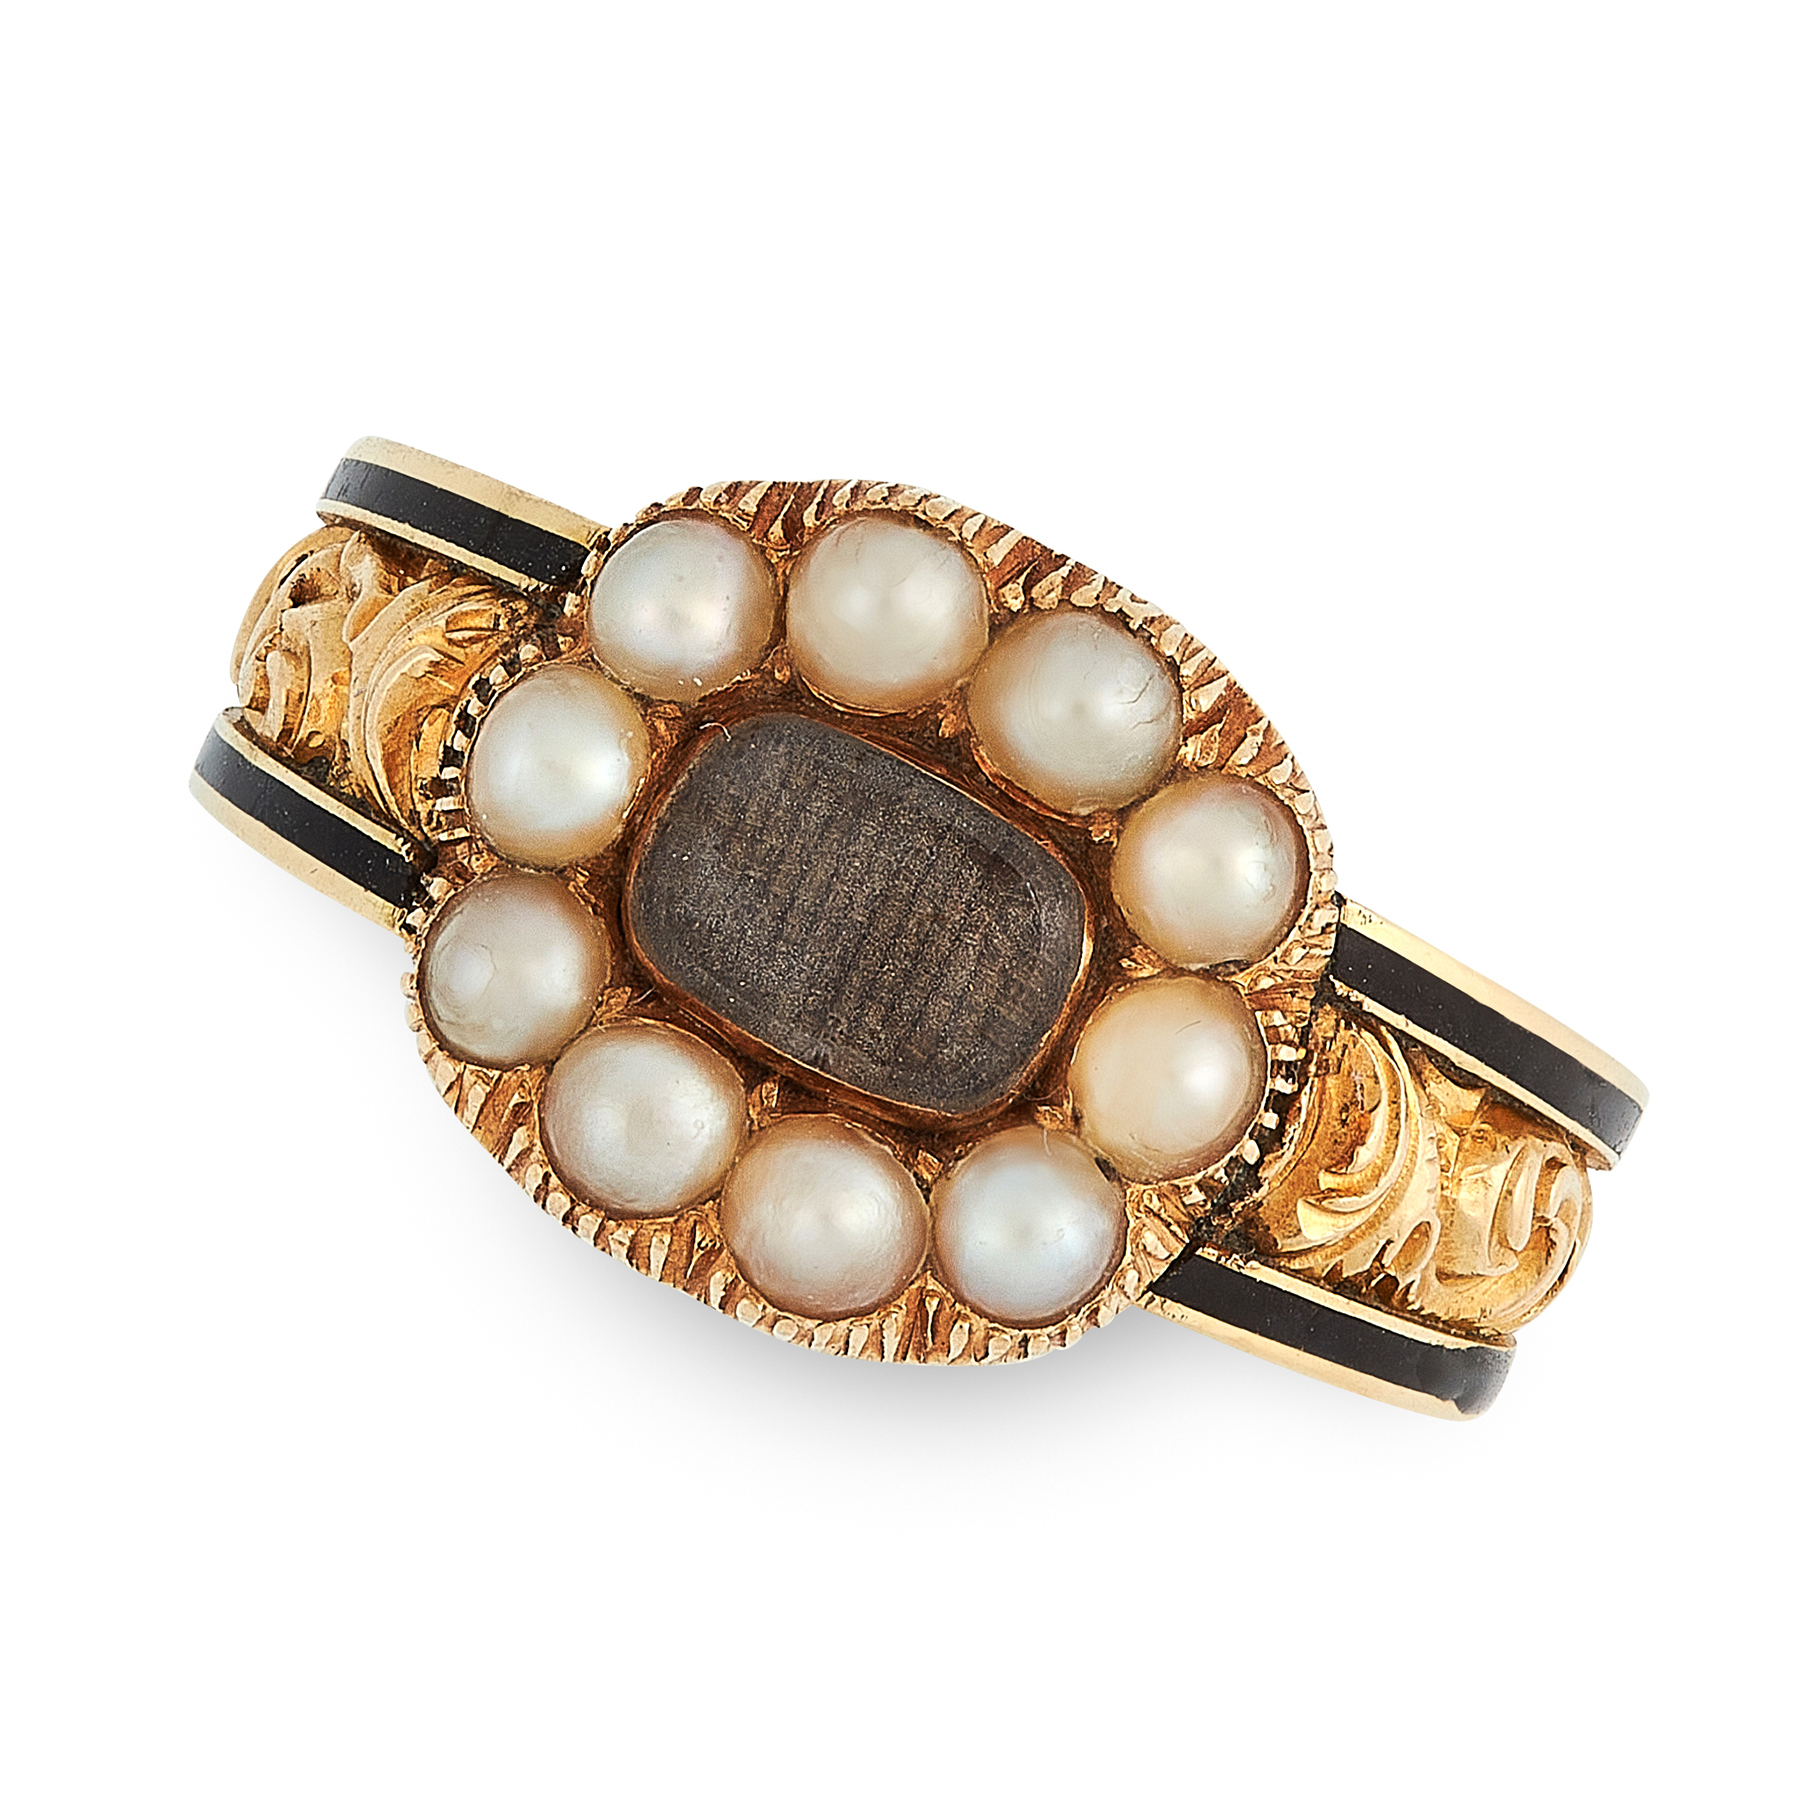 AN ANTIQUE GEORGIAN ENAMEL, HAIRWORK AND PEARL MOURNING RING, 1830 in 18ct yellow gold, the face set